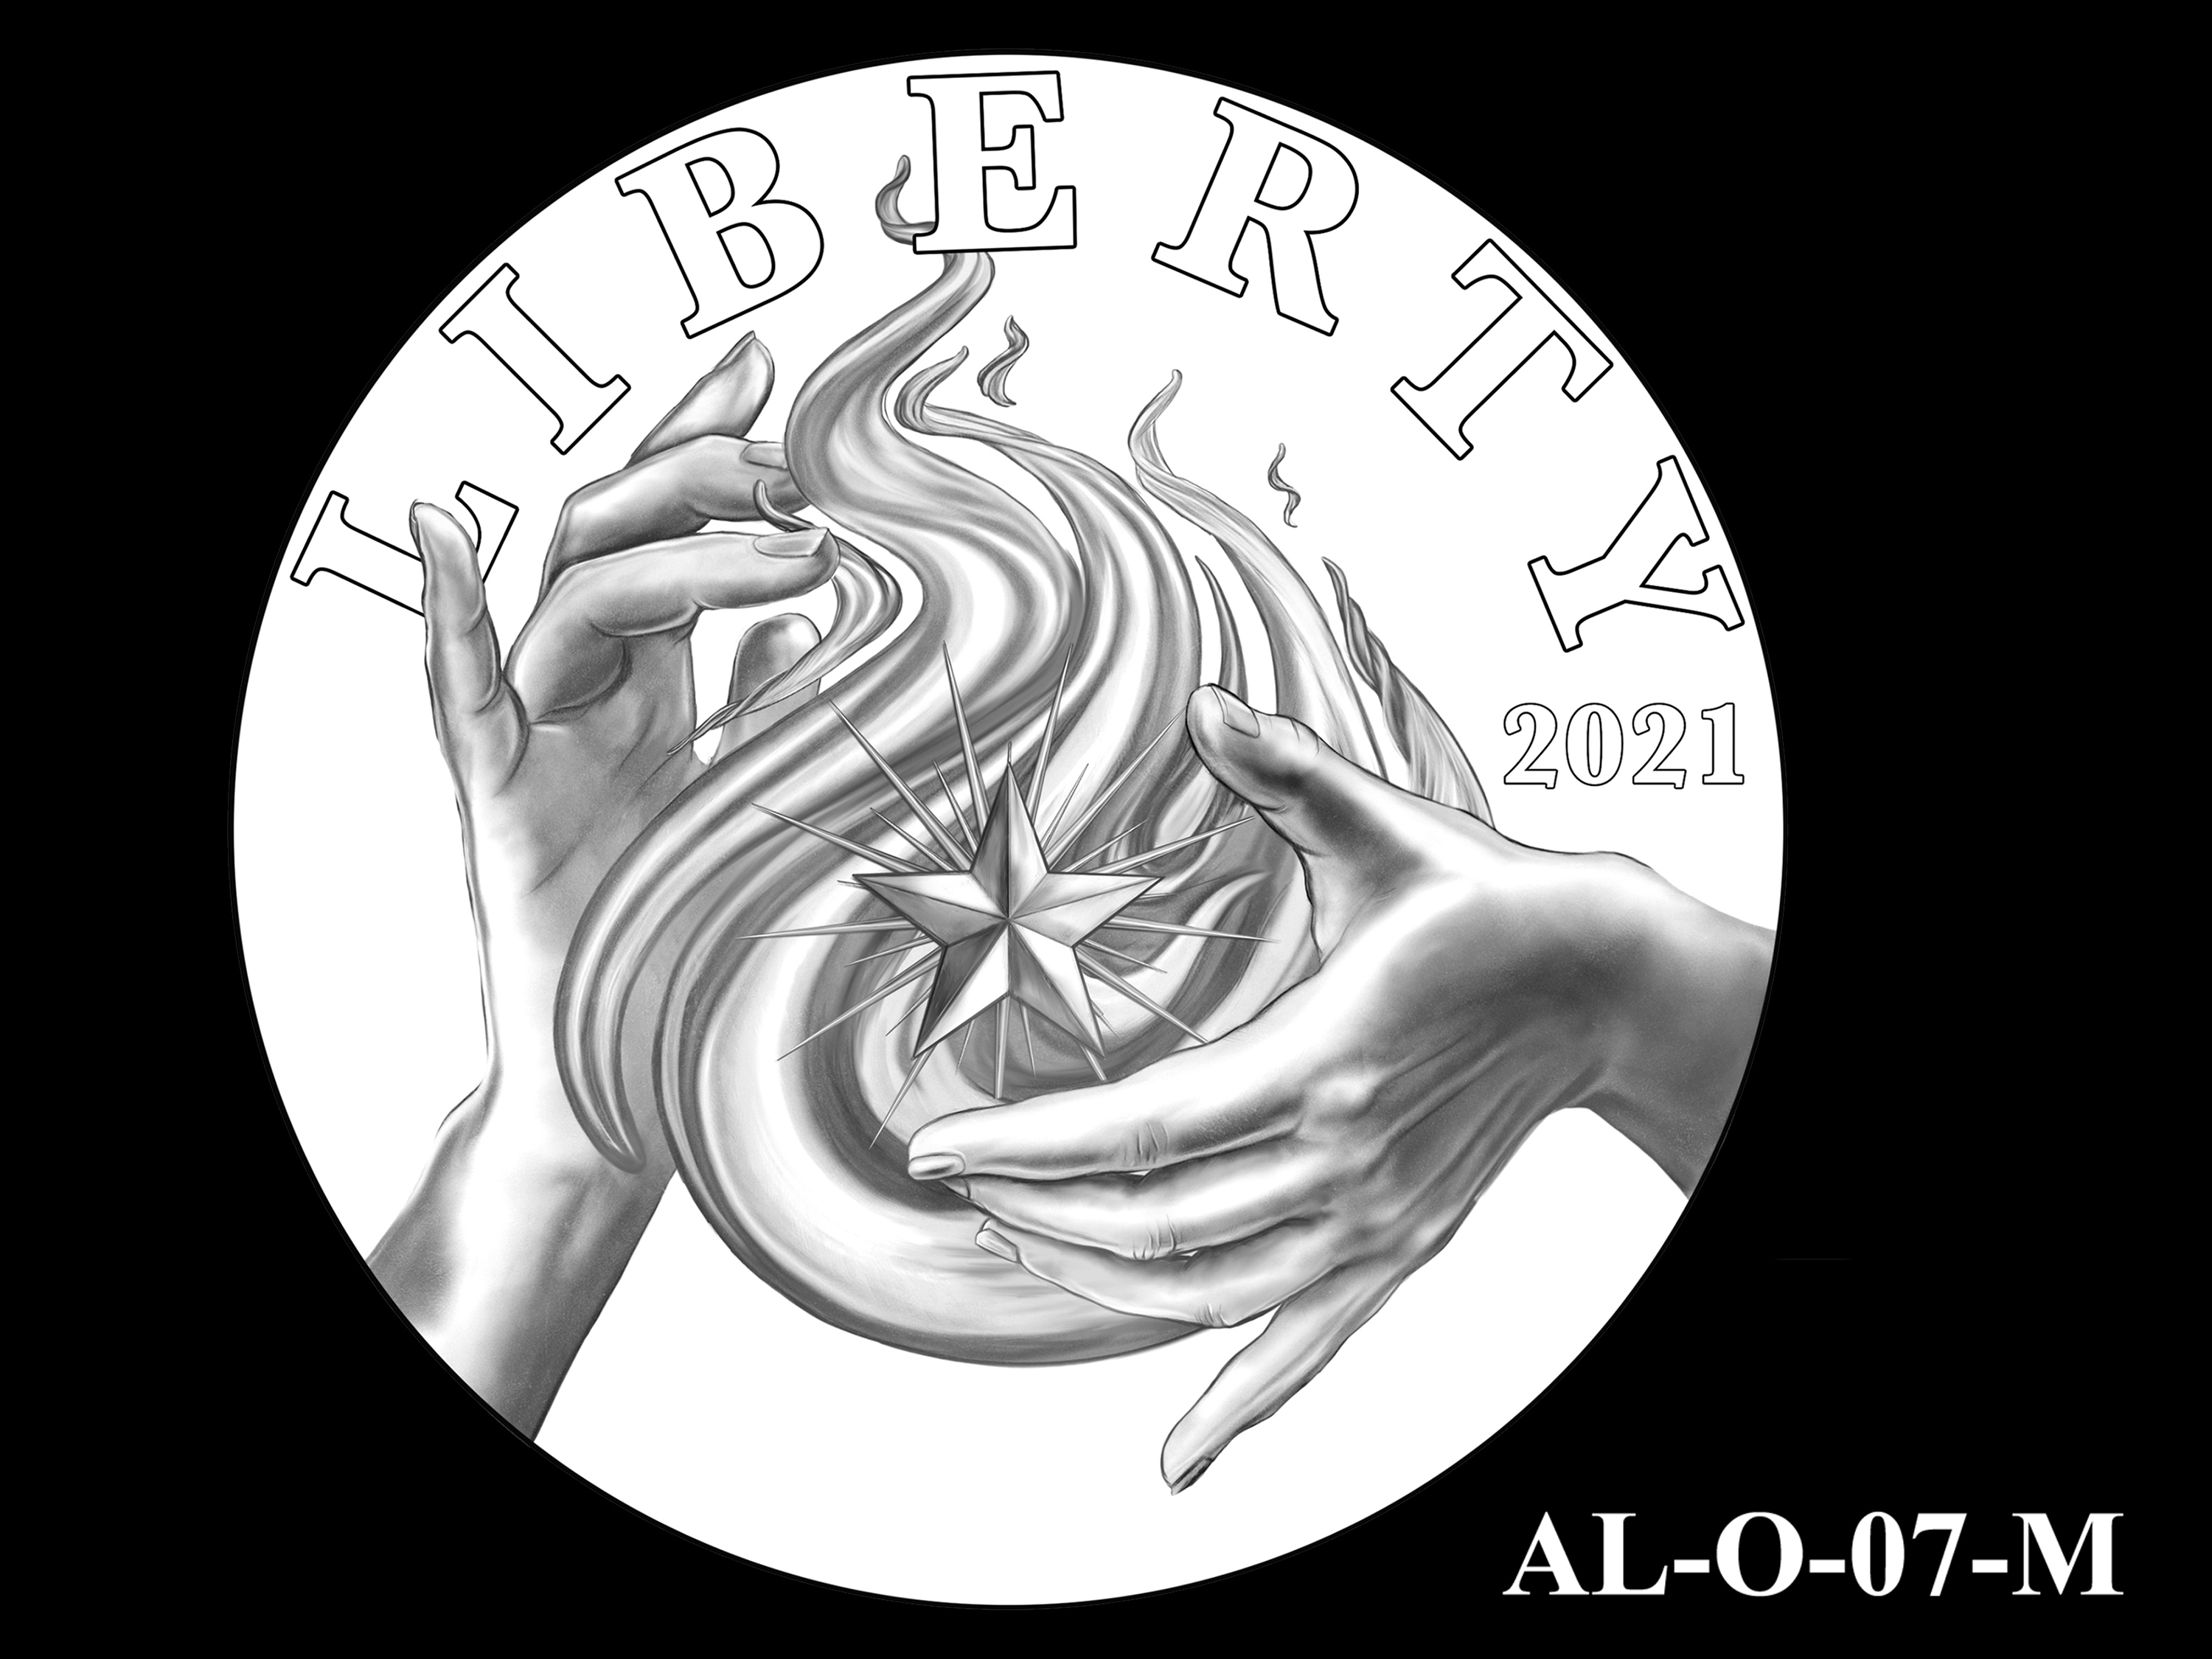 AL-O-07-M -- 2021 American Liberty Gold Coin and Silver Medal Program - Obverse